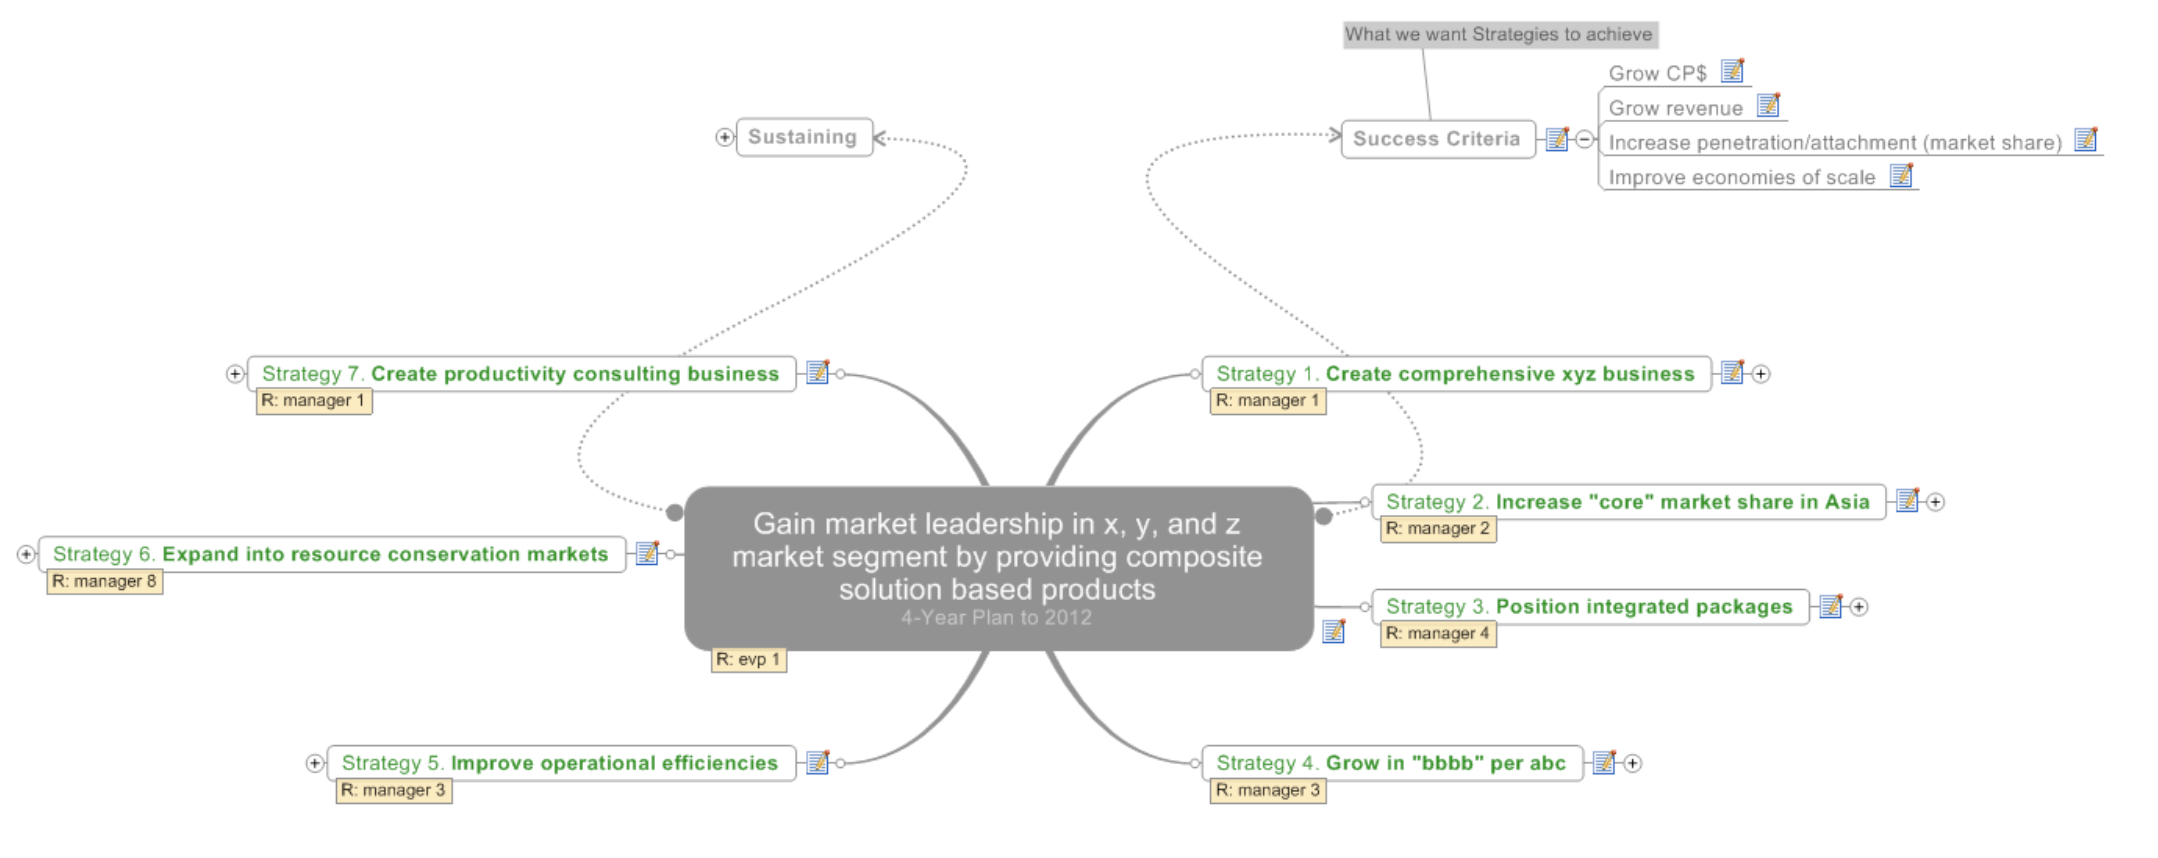 Top level of the strategy mindmap